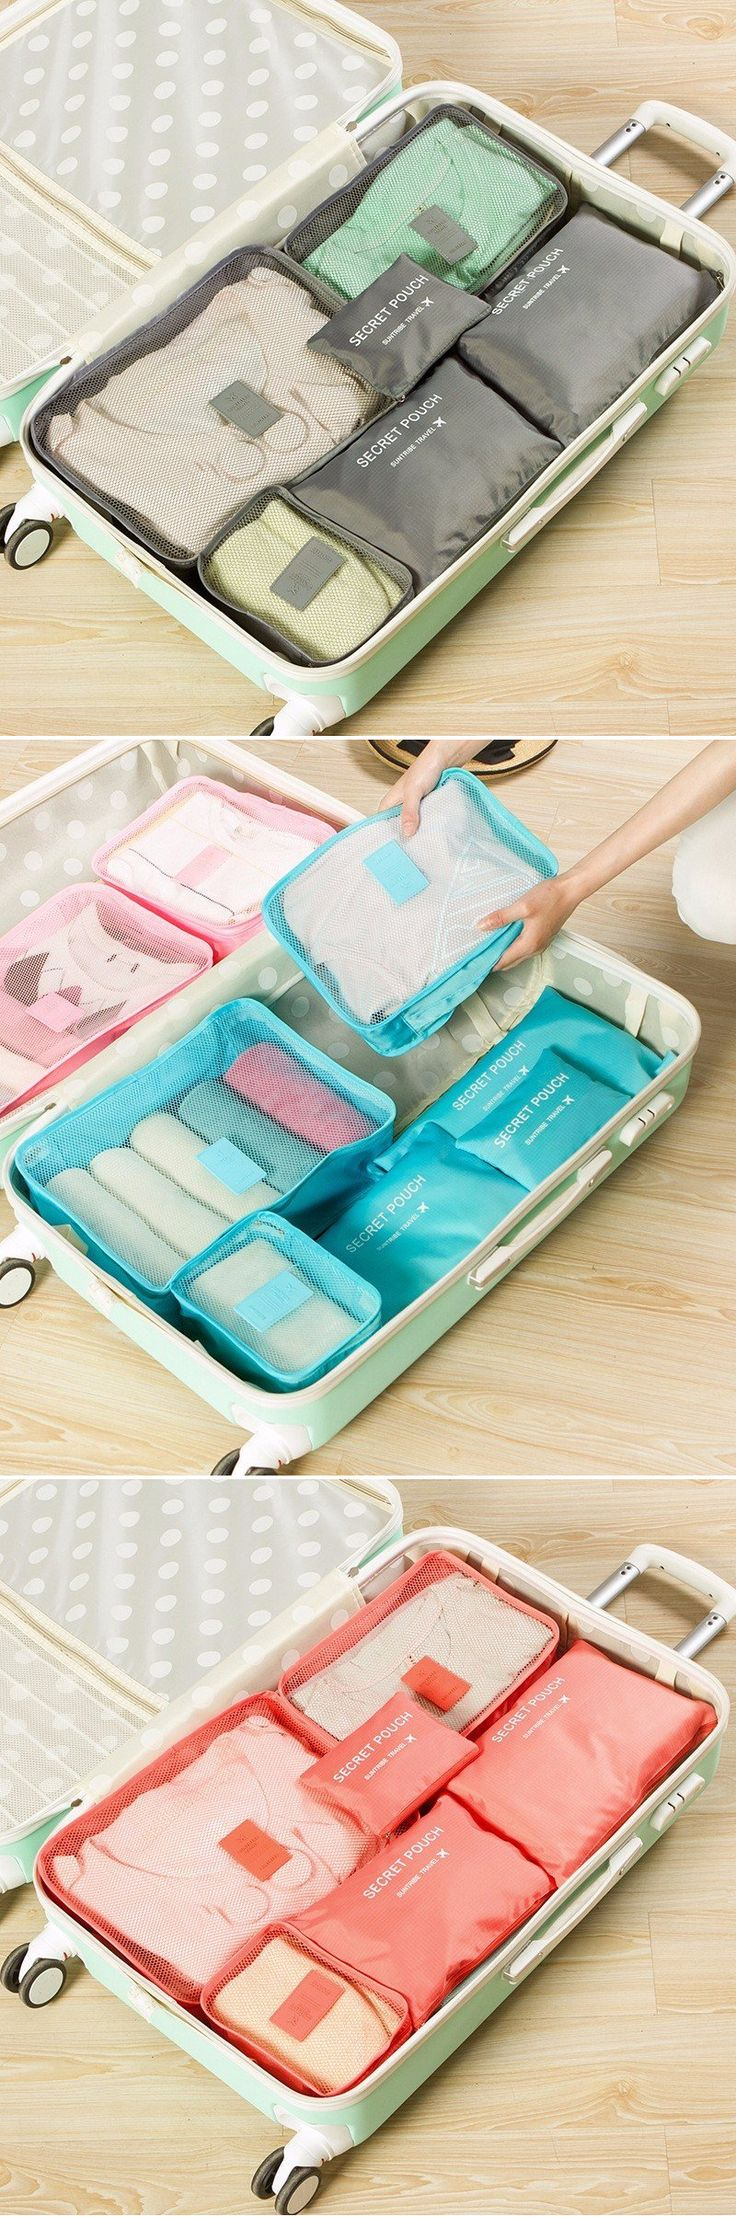 best wardrobe ideas wardrobes walking closet 6 pcs oxford travel waterproof storage bag large capacity folding bag oxford storage container